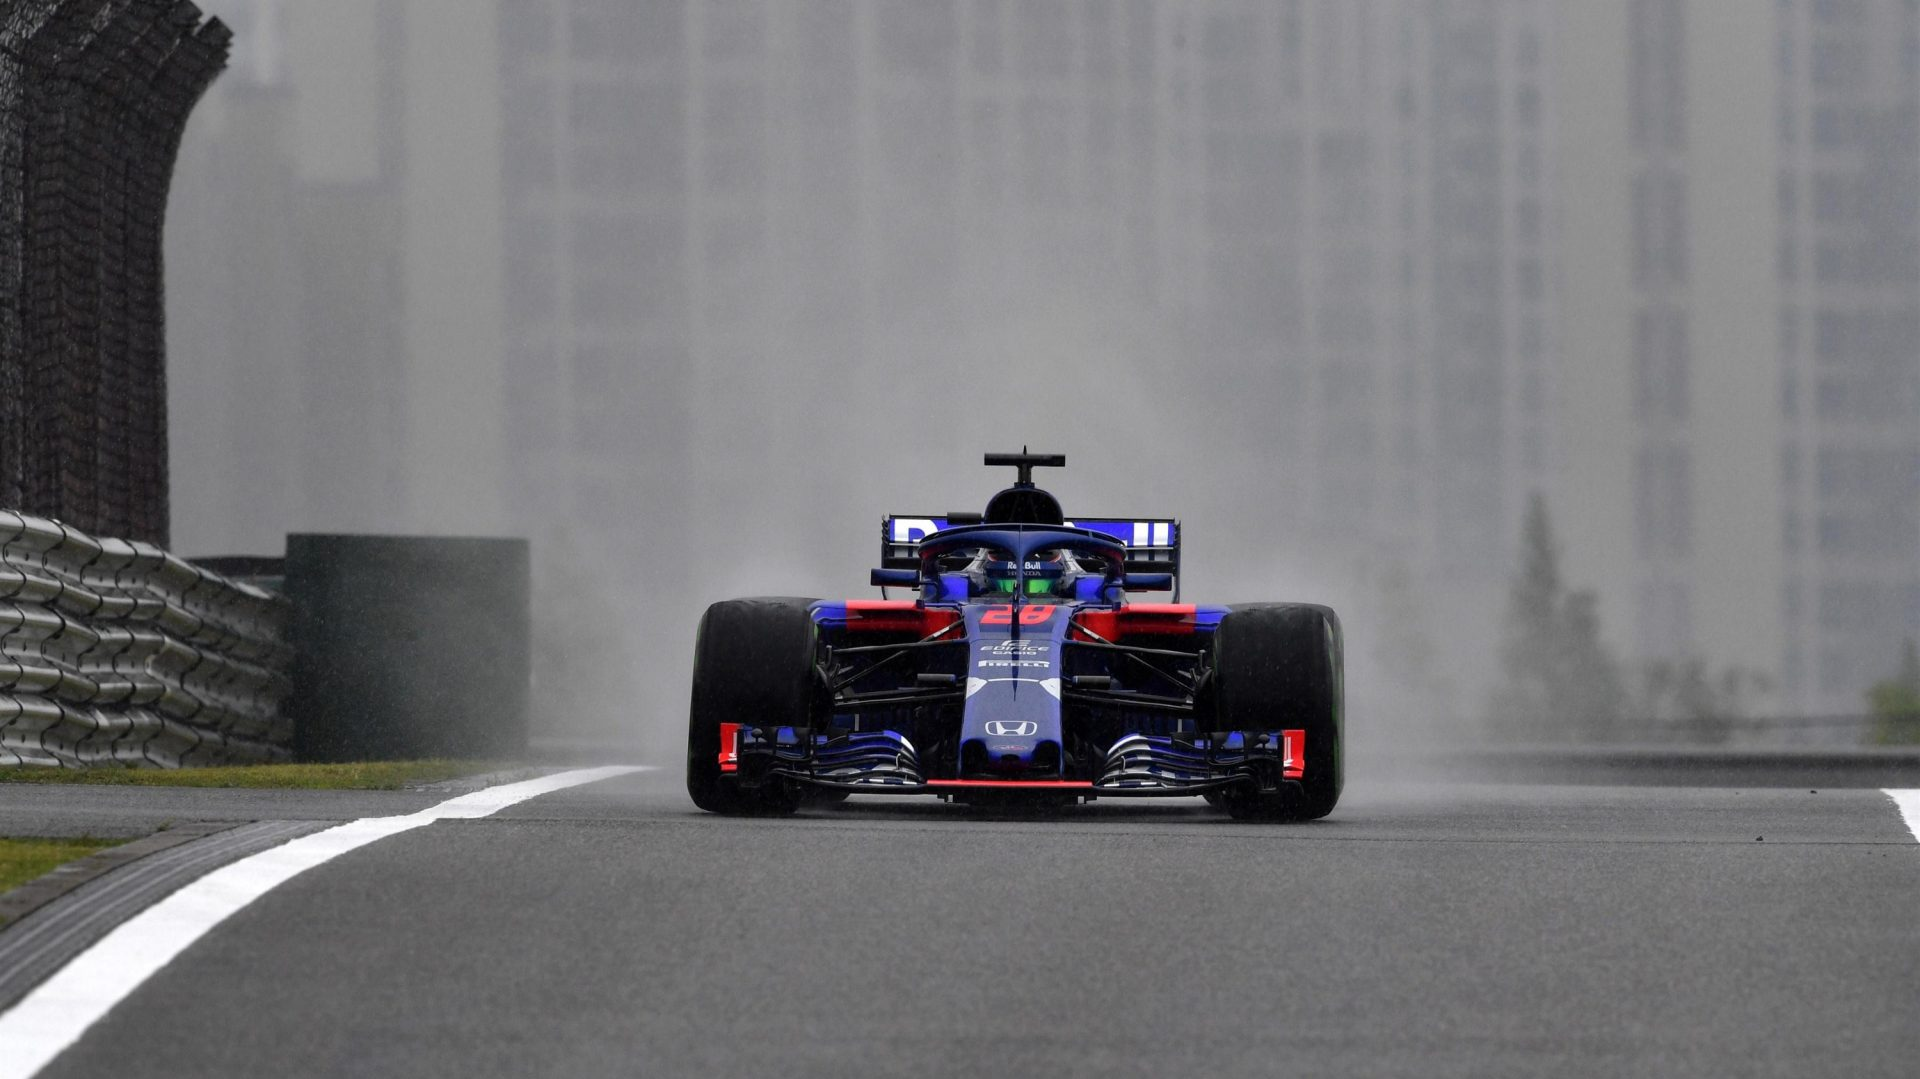 https://www.formula1.com/content/fom-website/en/latest/features/2018/4/gallery--the-best-images-from-friday-in-china/_jcr_content/featureContent/manual_gallery/image51.img.1920.medium.jpg/1523607343966.jpg